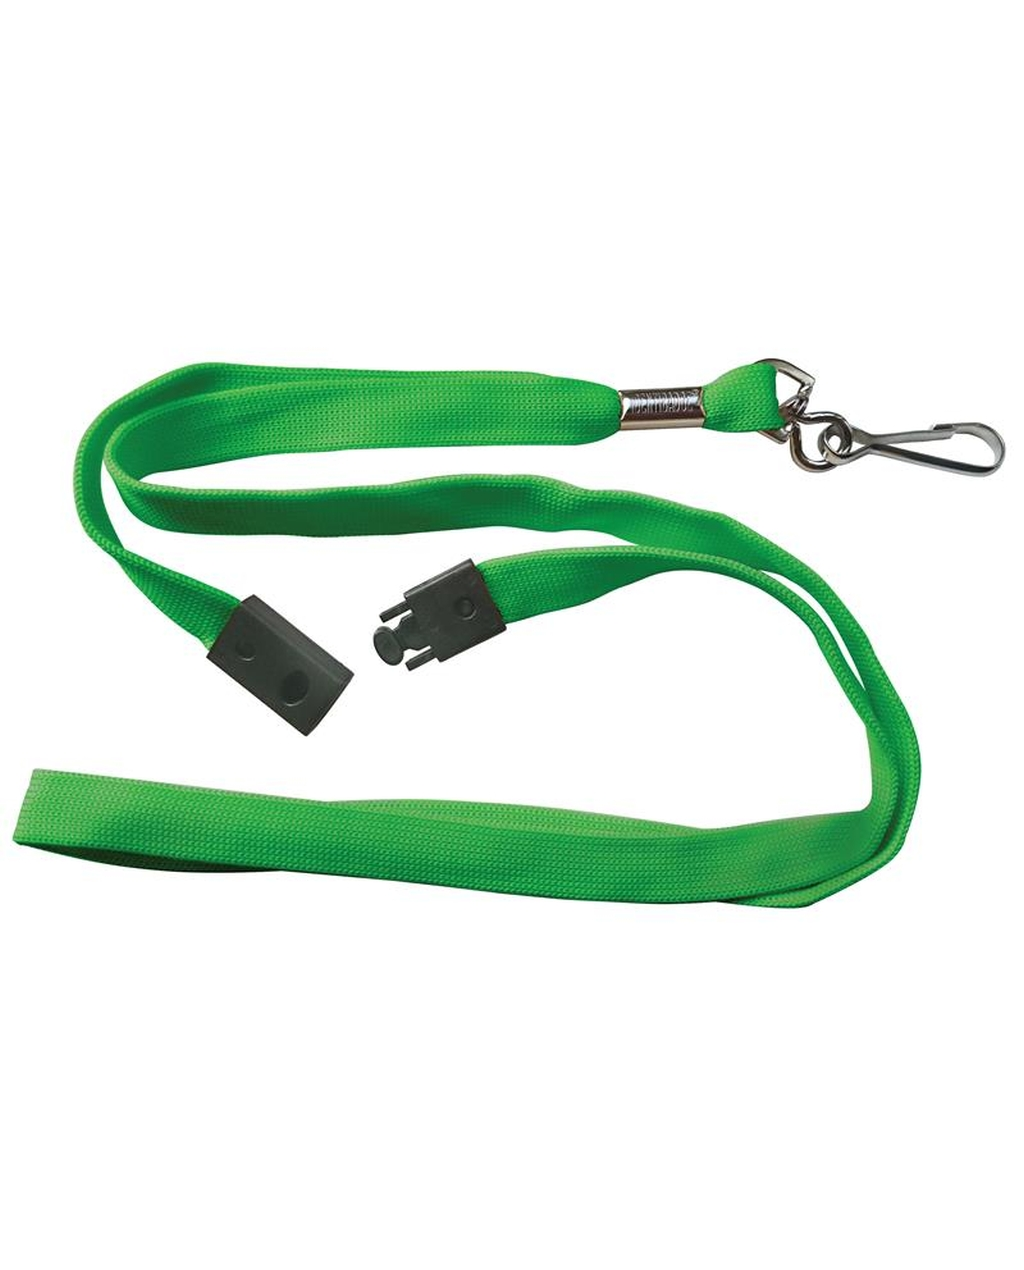 10 Breakaway Lanyards - Green